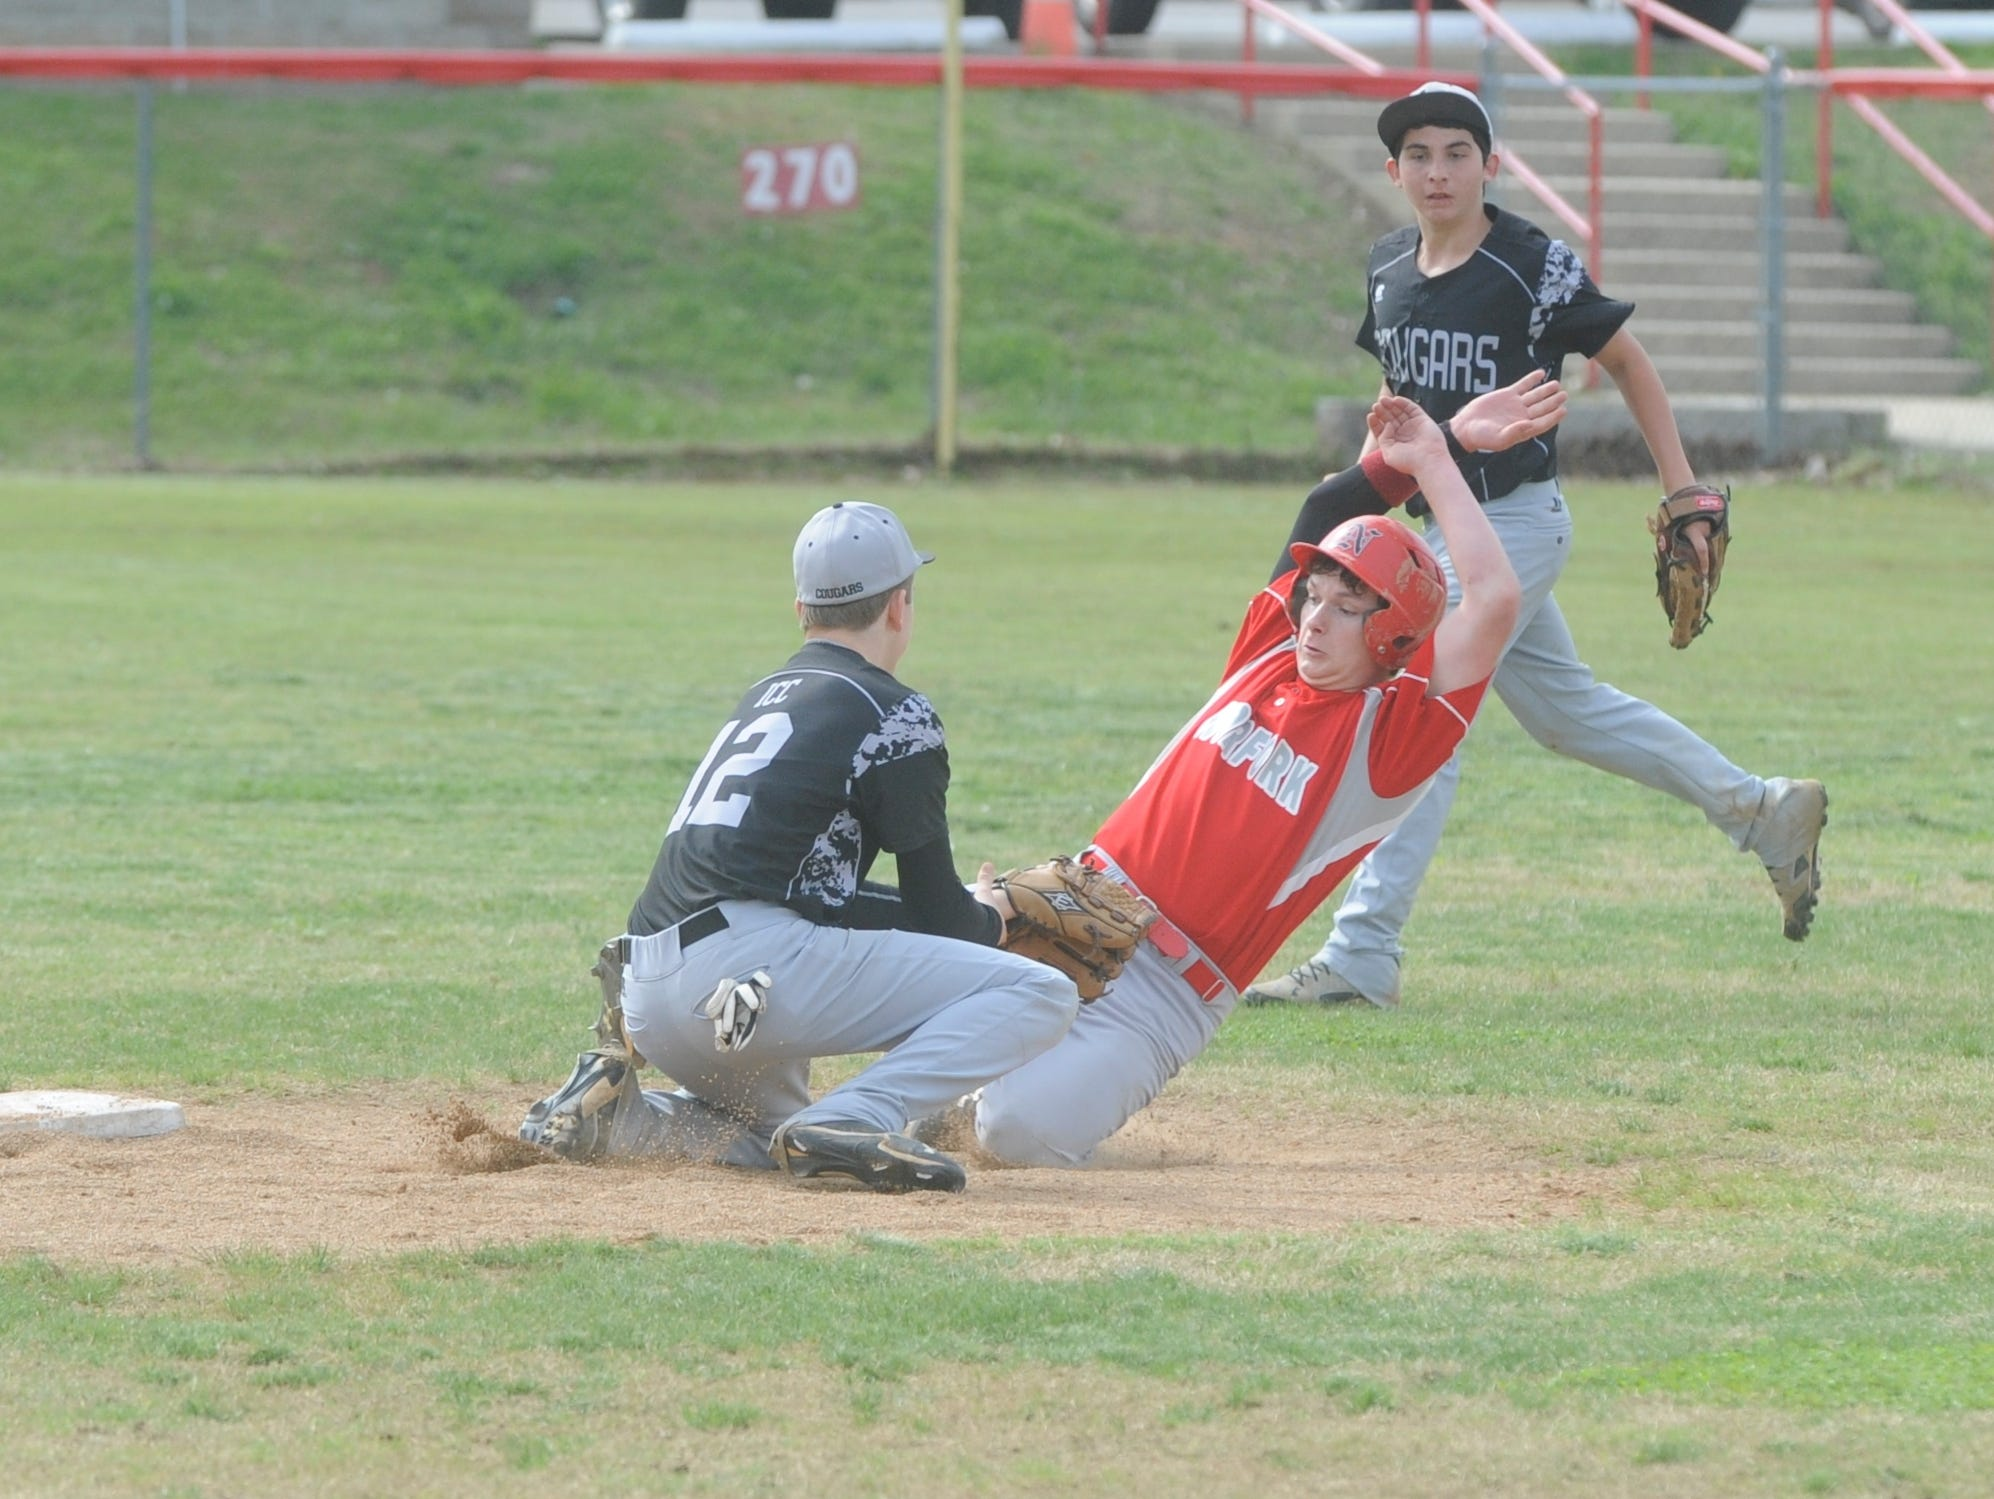 Norfork's Quinn Ellison is tagged out attempting to steal second base as Izard County's Cody Workman applies the tag during the Panthers' 17-2 win over the Cougars on Thursday.